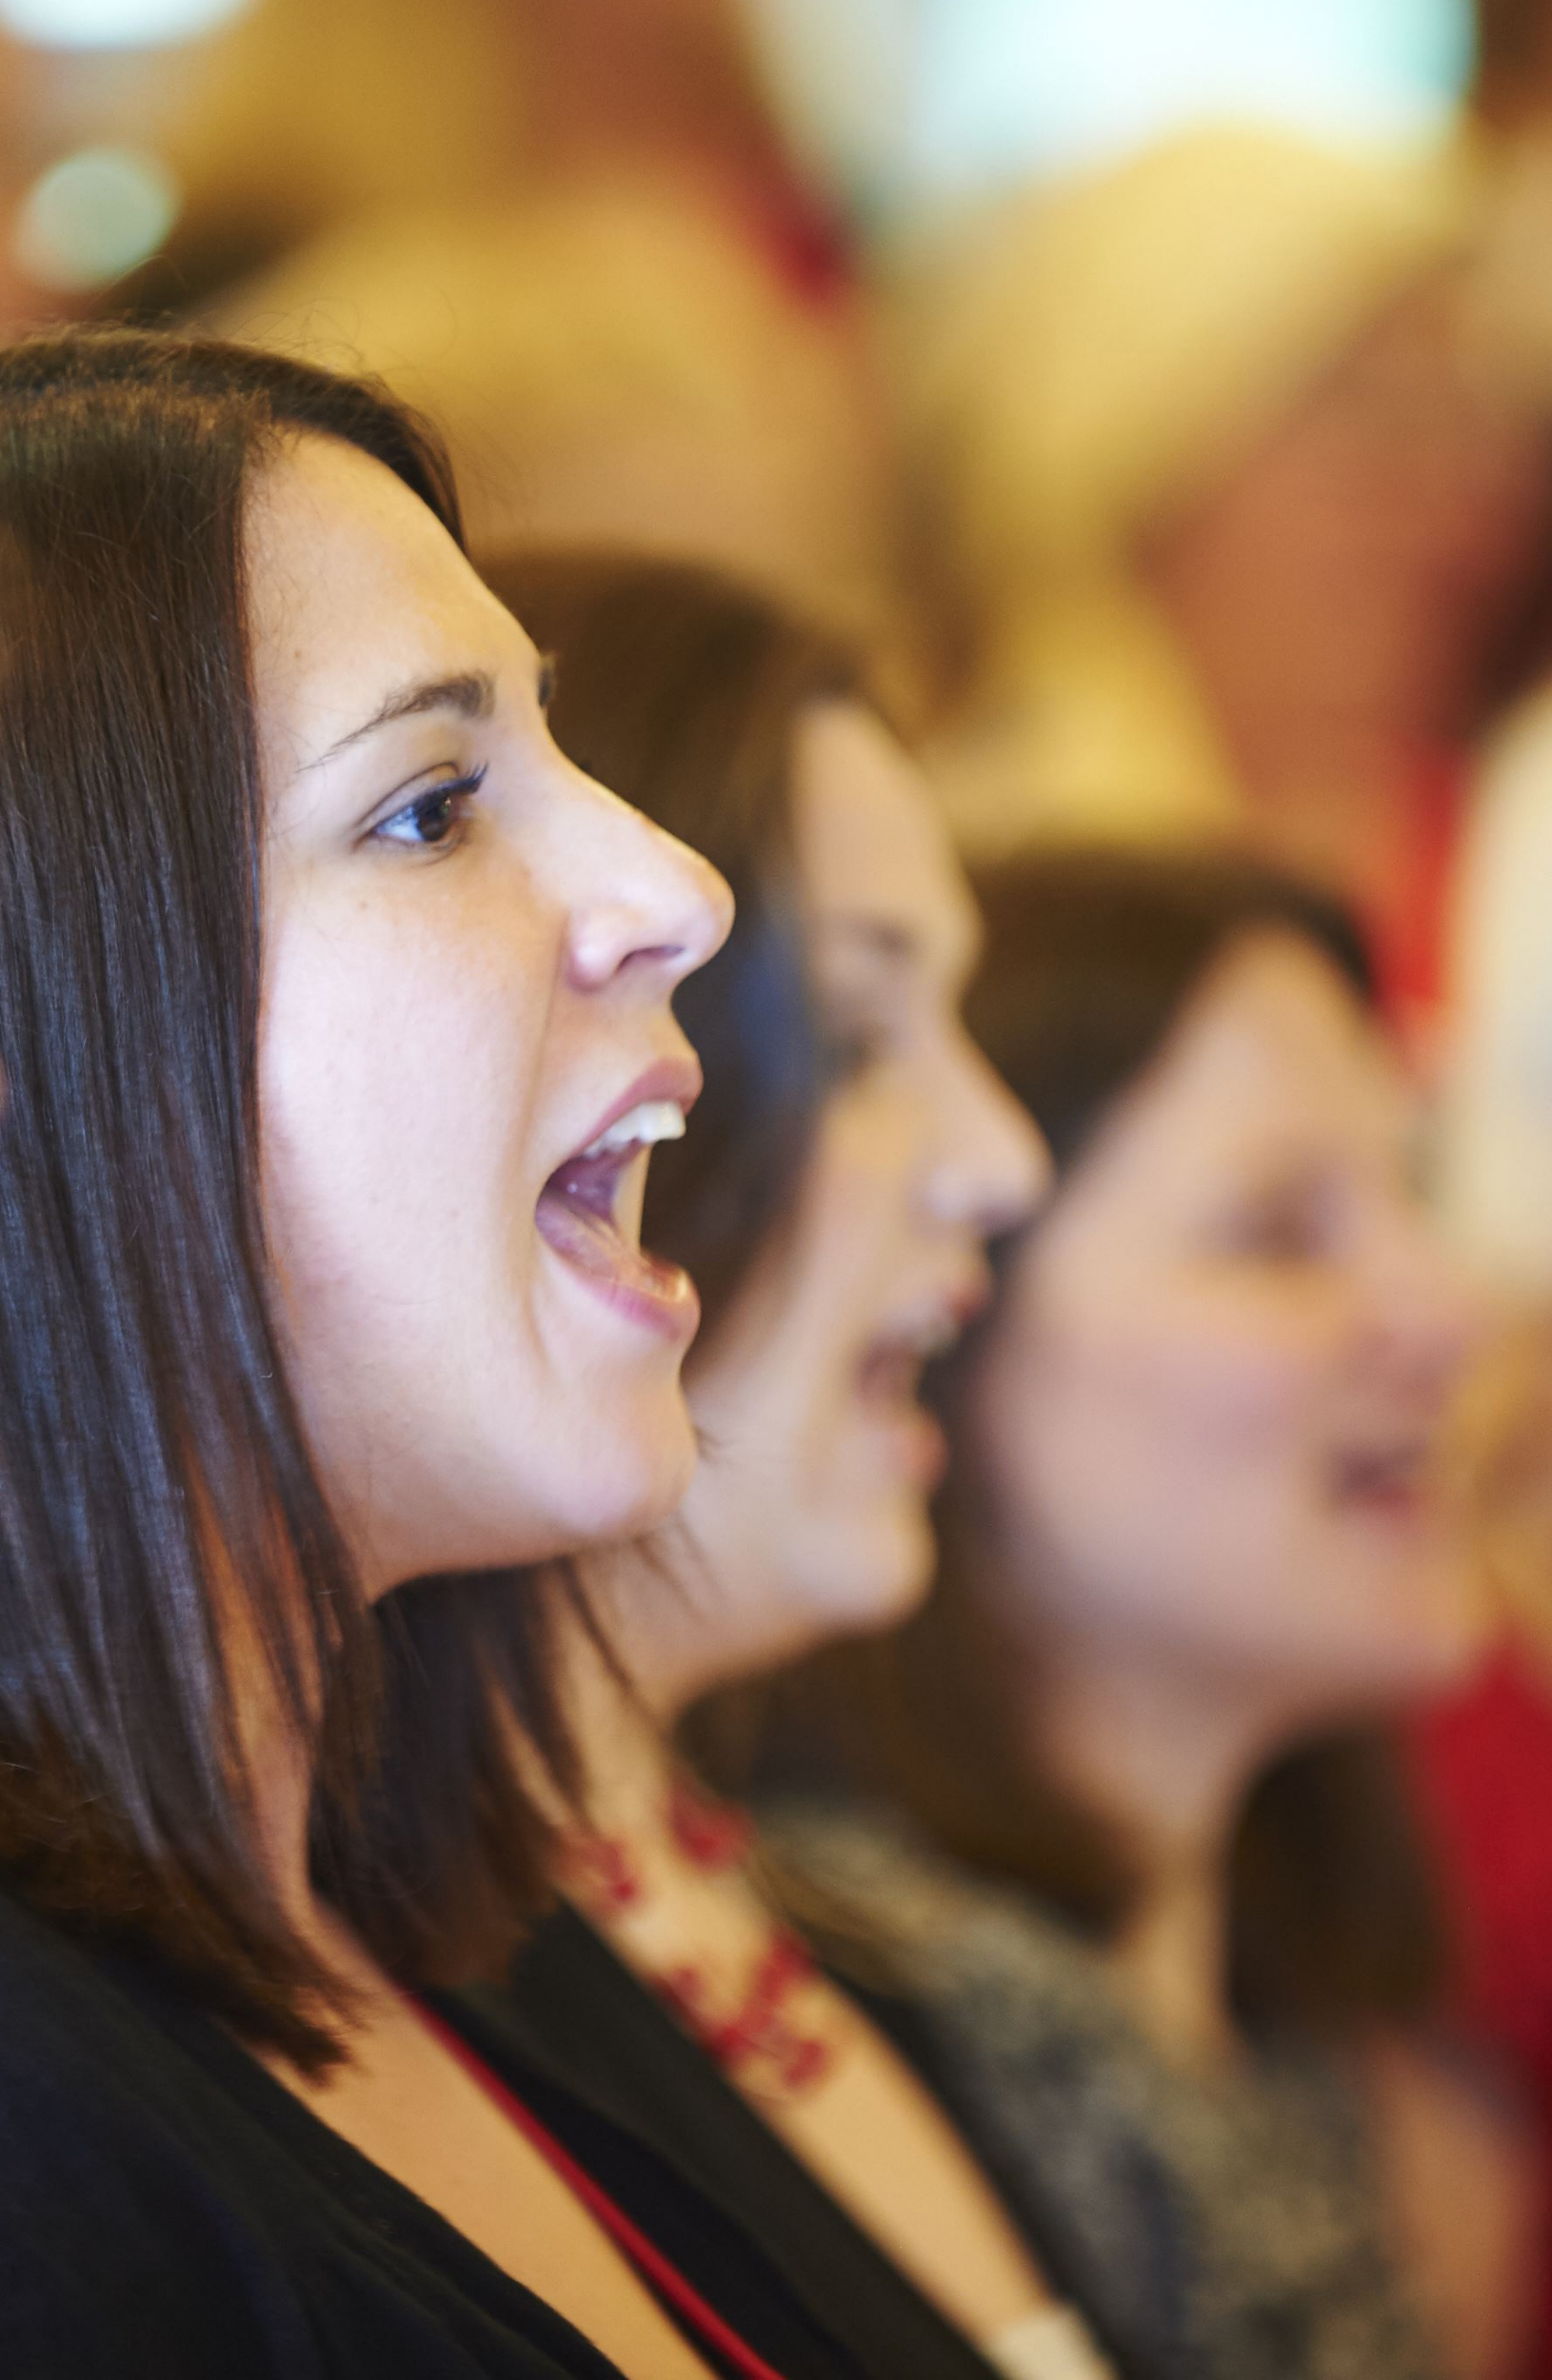 """Singing together has the power to lift spirits and transform lives,"" says MasterWorks Chorale director Kip Coerper, ChM, especially when sharing ""the joy of group singing in a warm, friendly and supportive atmosphere."" Members need only have a desire to learn and perform great choral music."